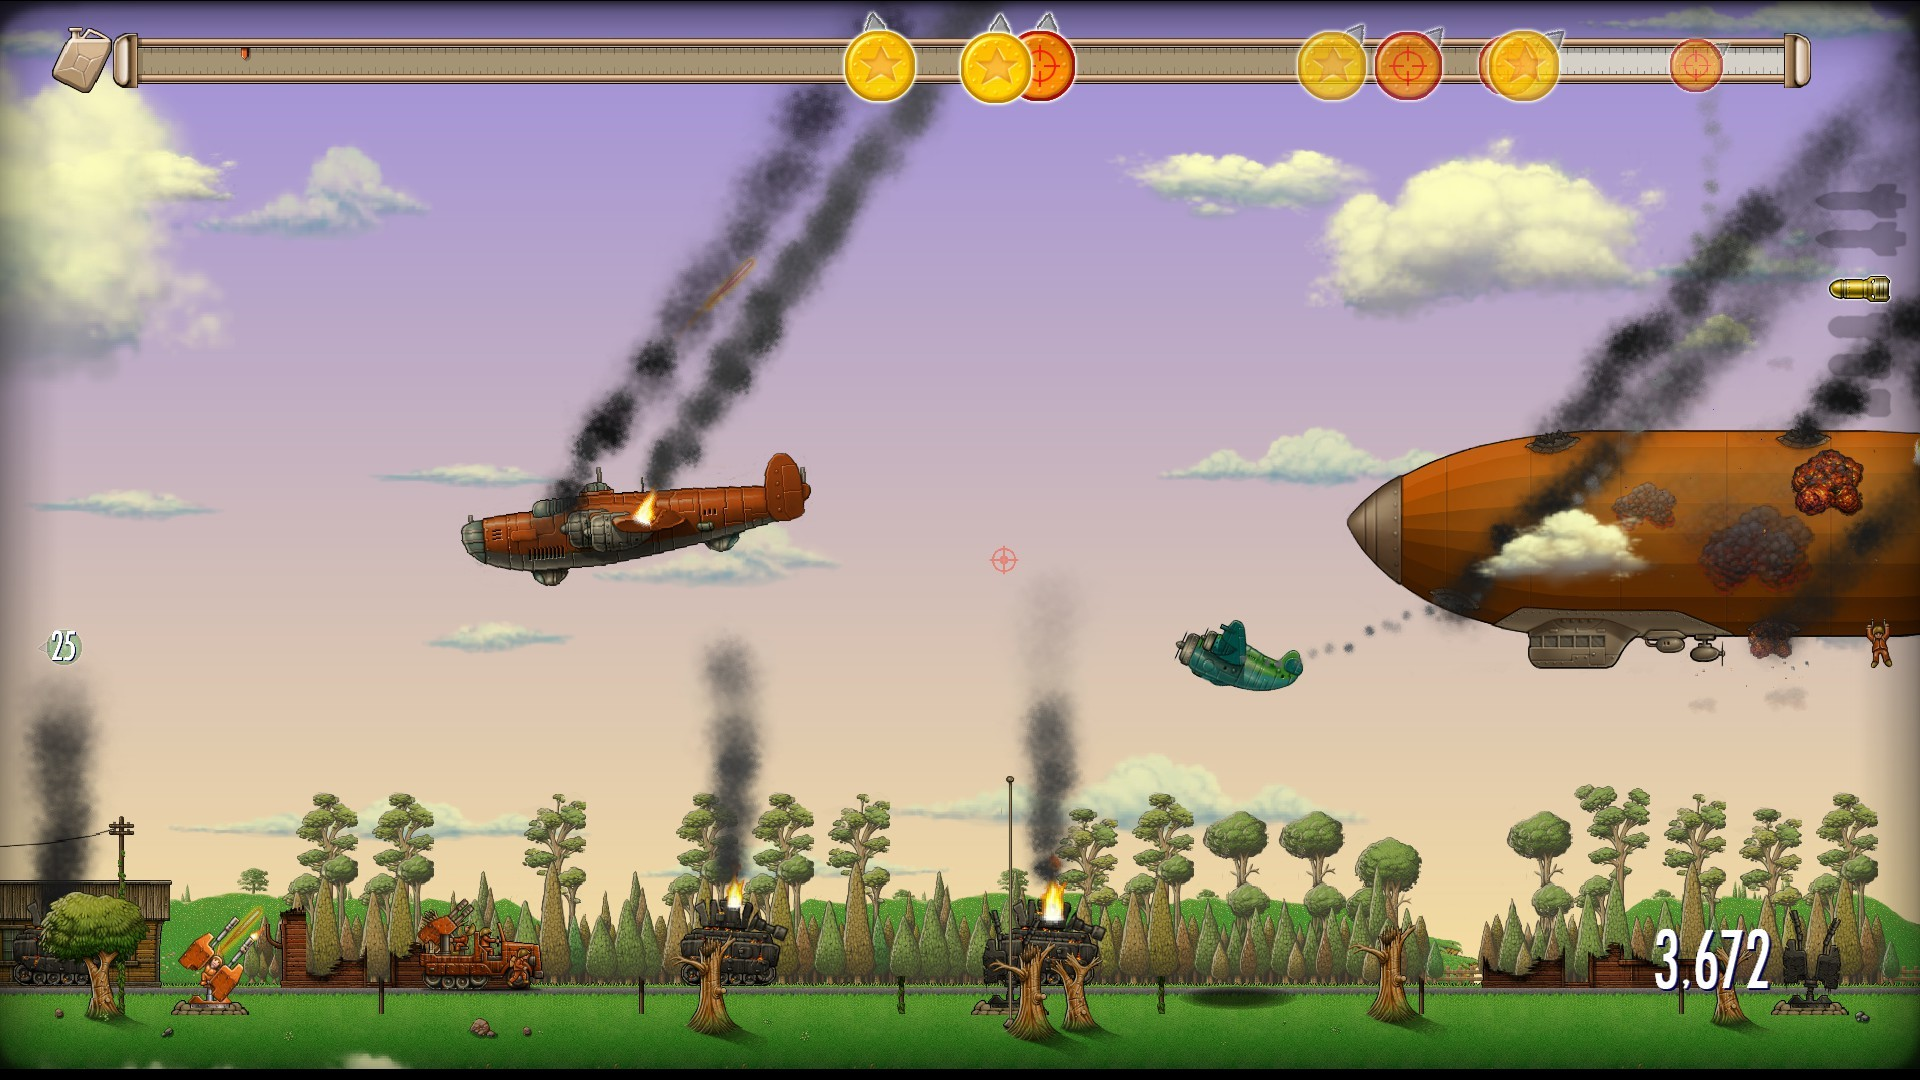 rogue-aces-deluxe-pc-screenshot-04